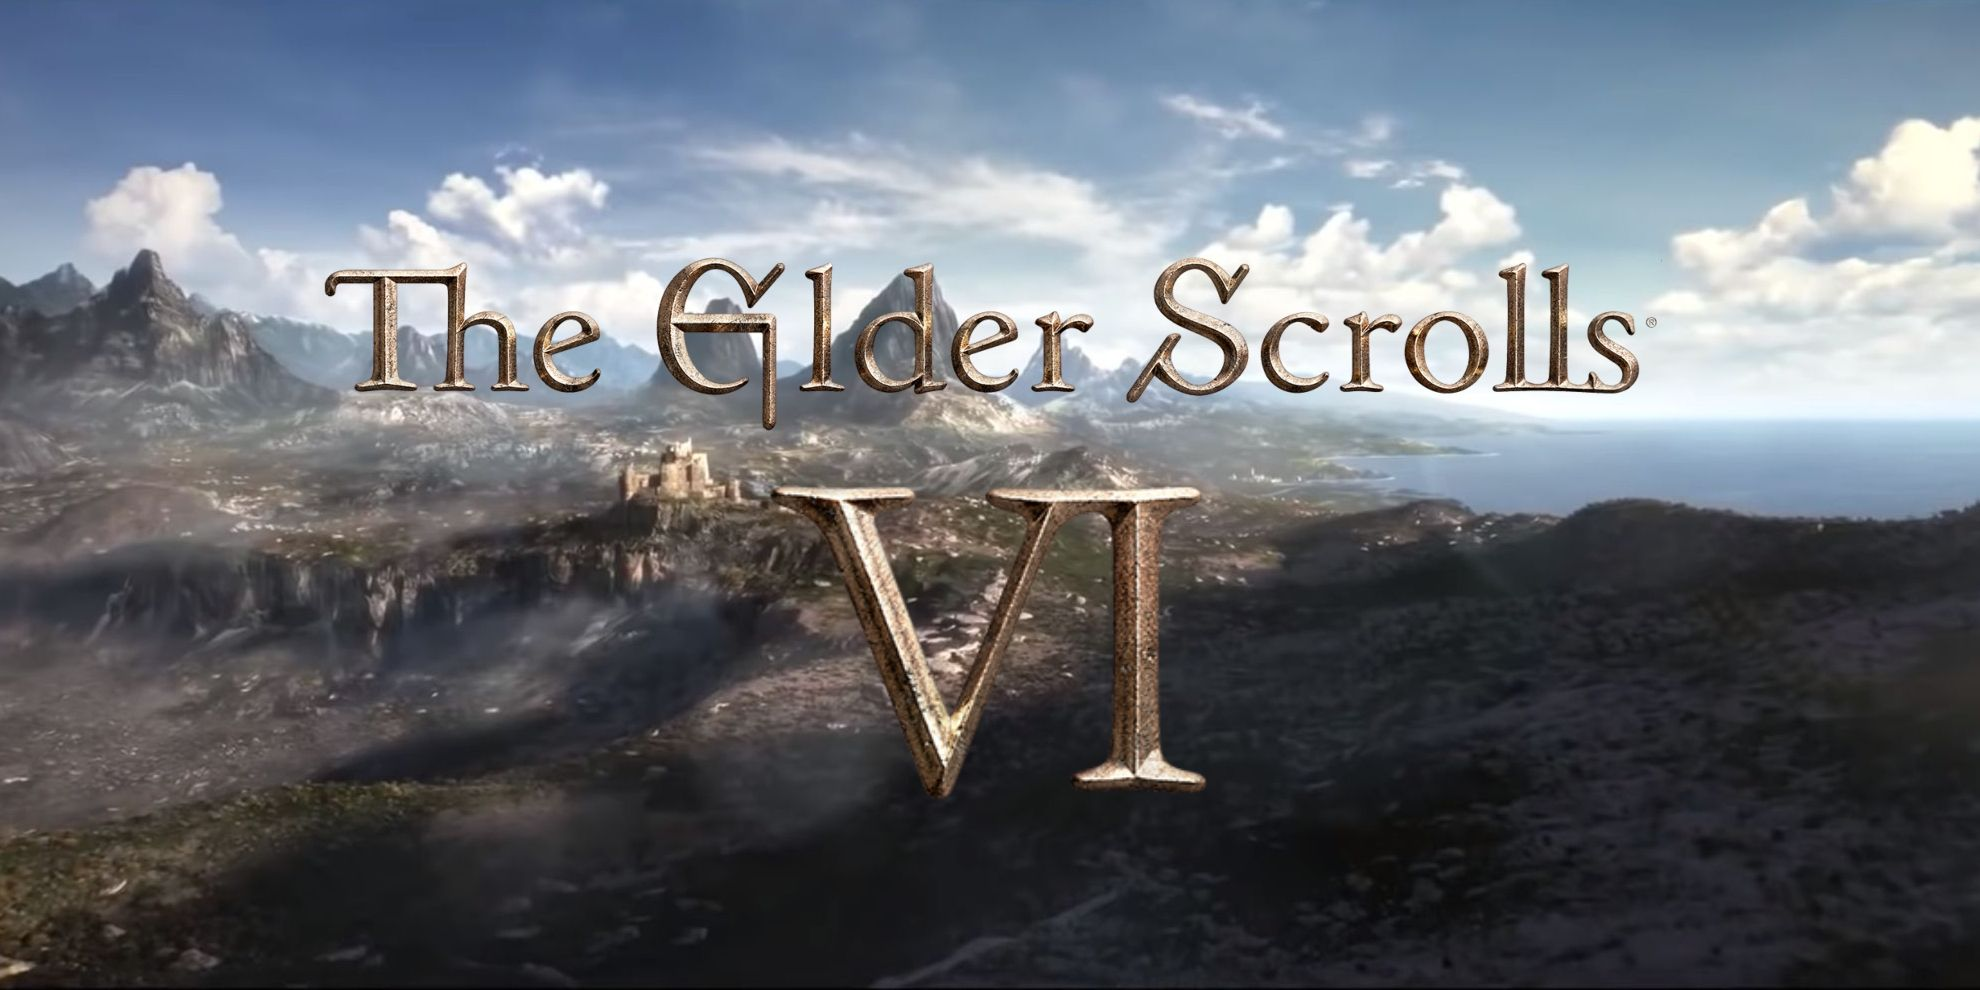 Elder Scrolls 6 Won't Be Released Until 2026, According To Insider